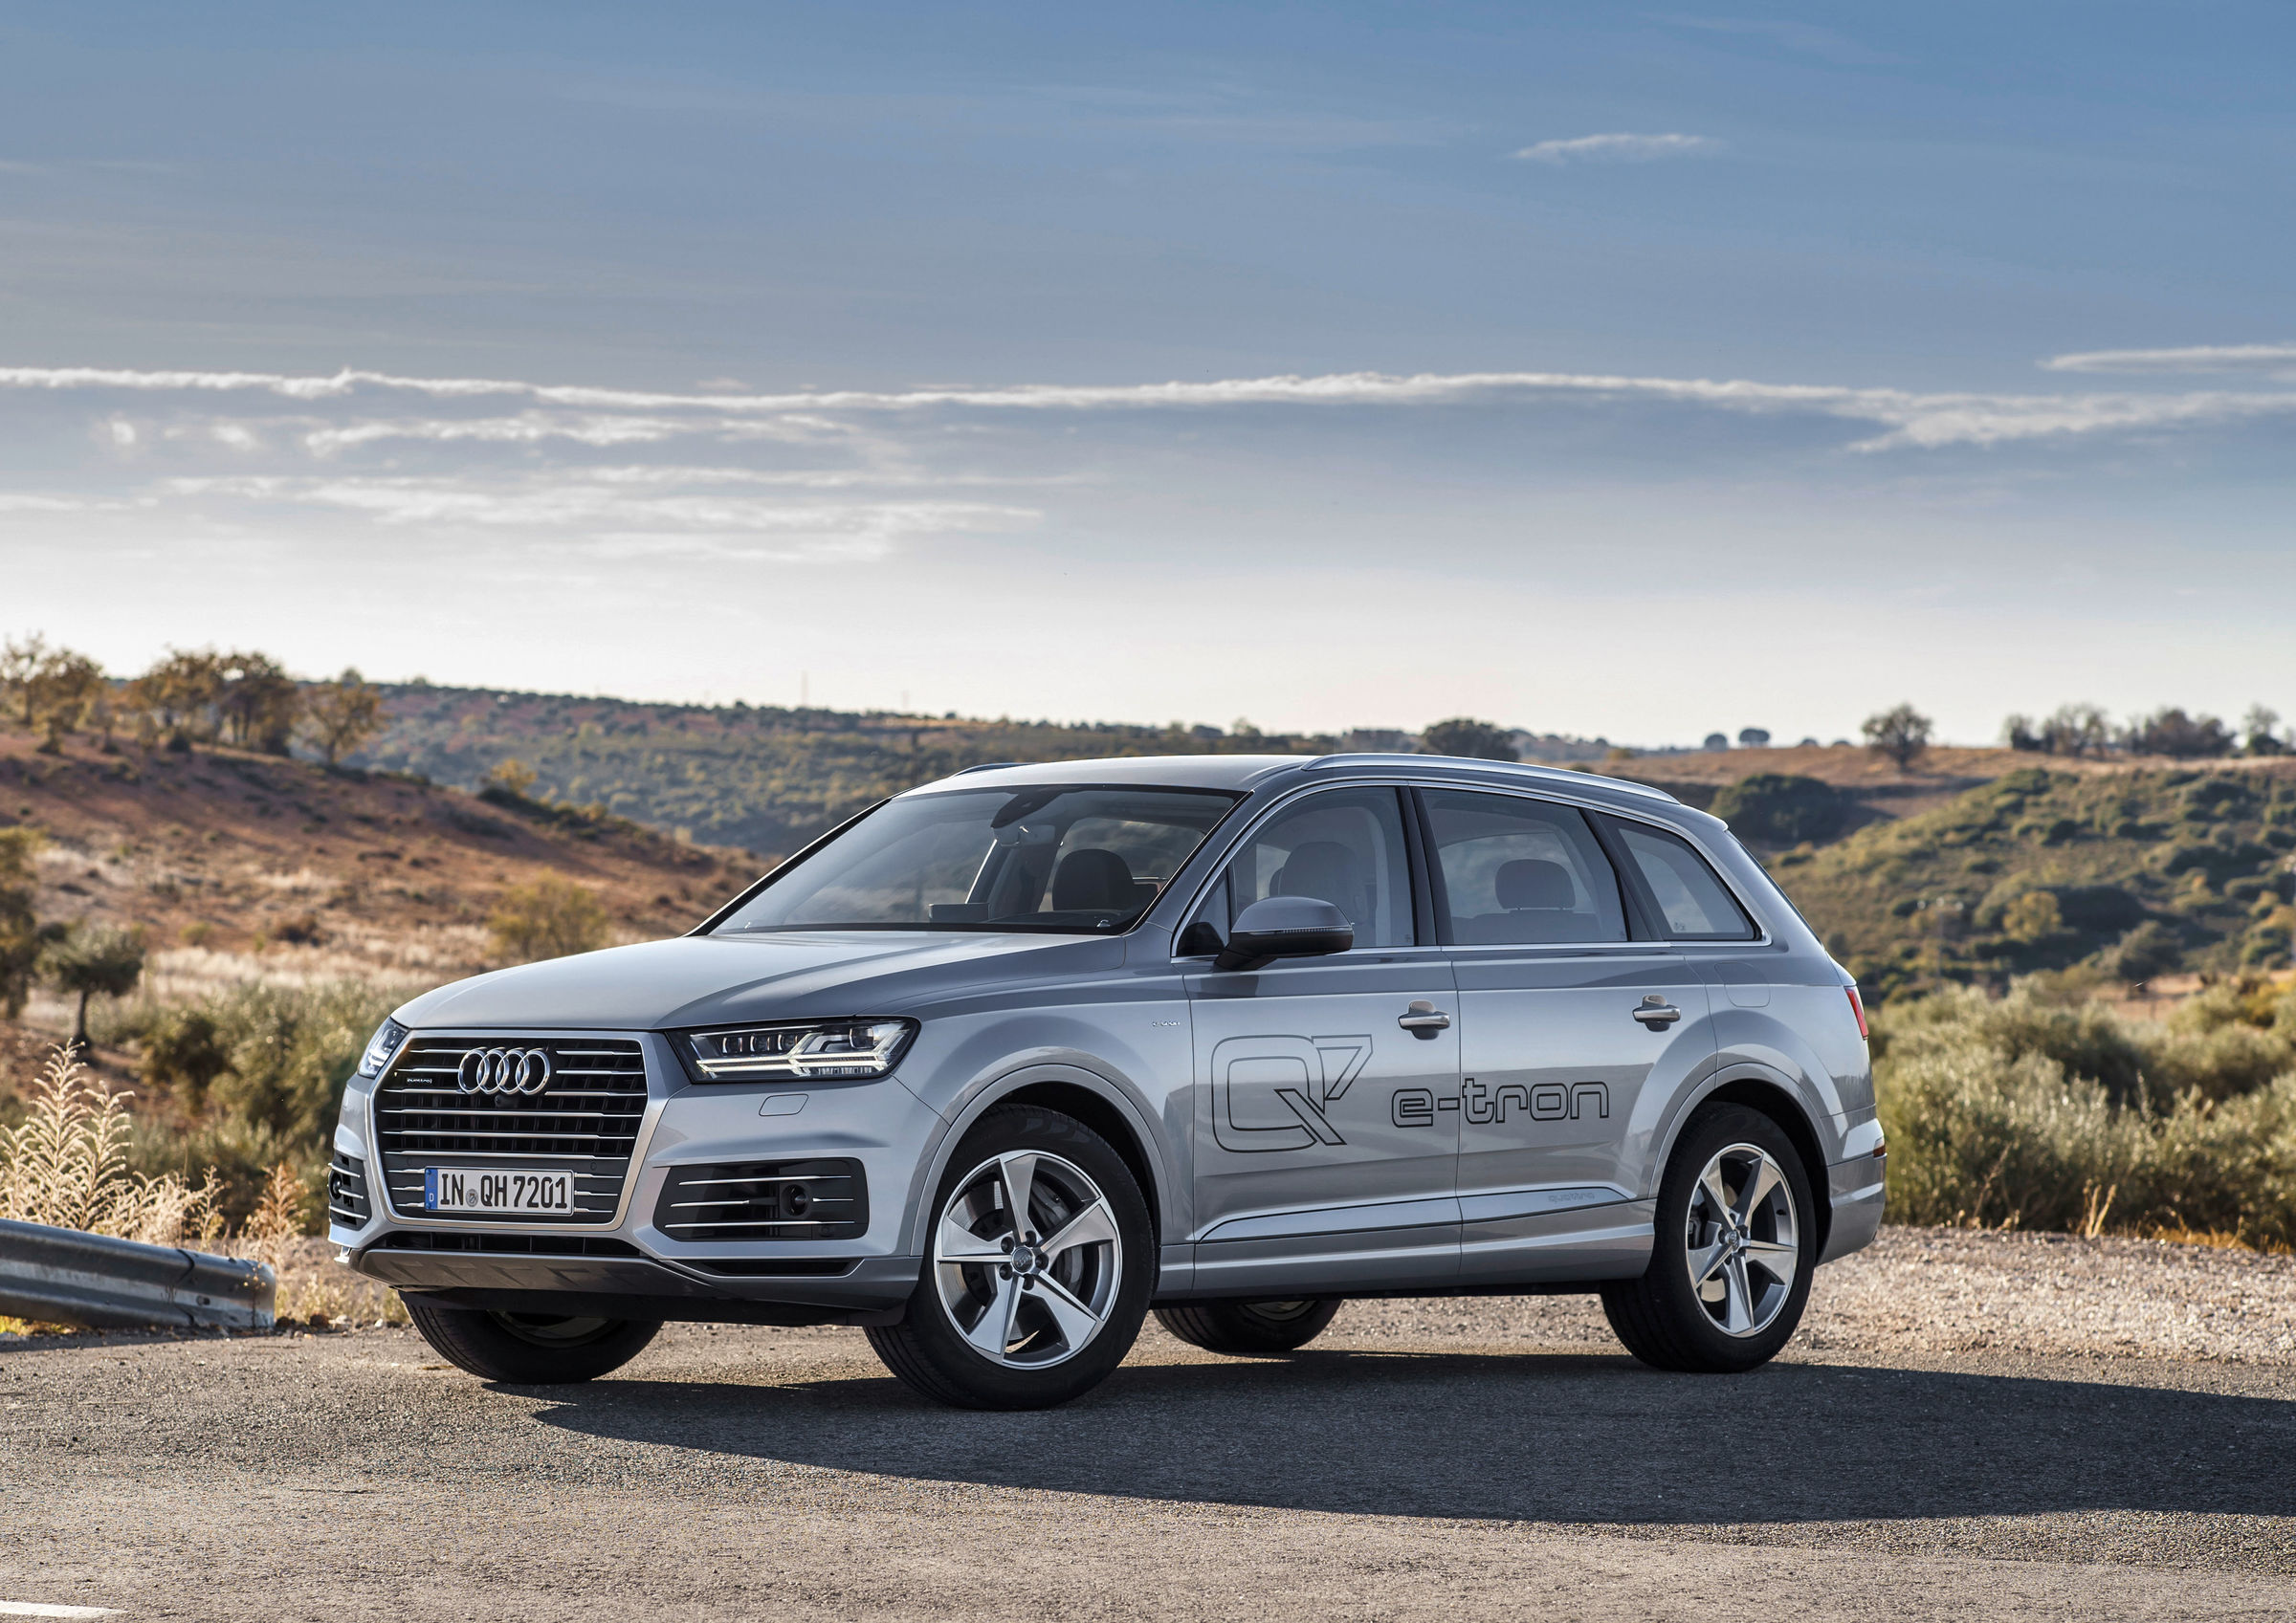 The Audi Q E Tron TDI Quattro New SUV Expands Portfolio Of - Audi q7 tdi